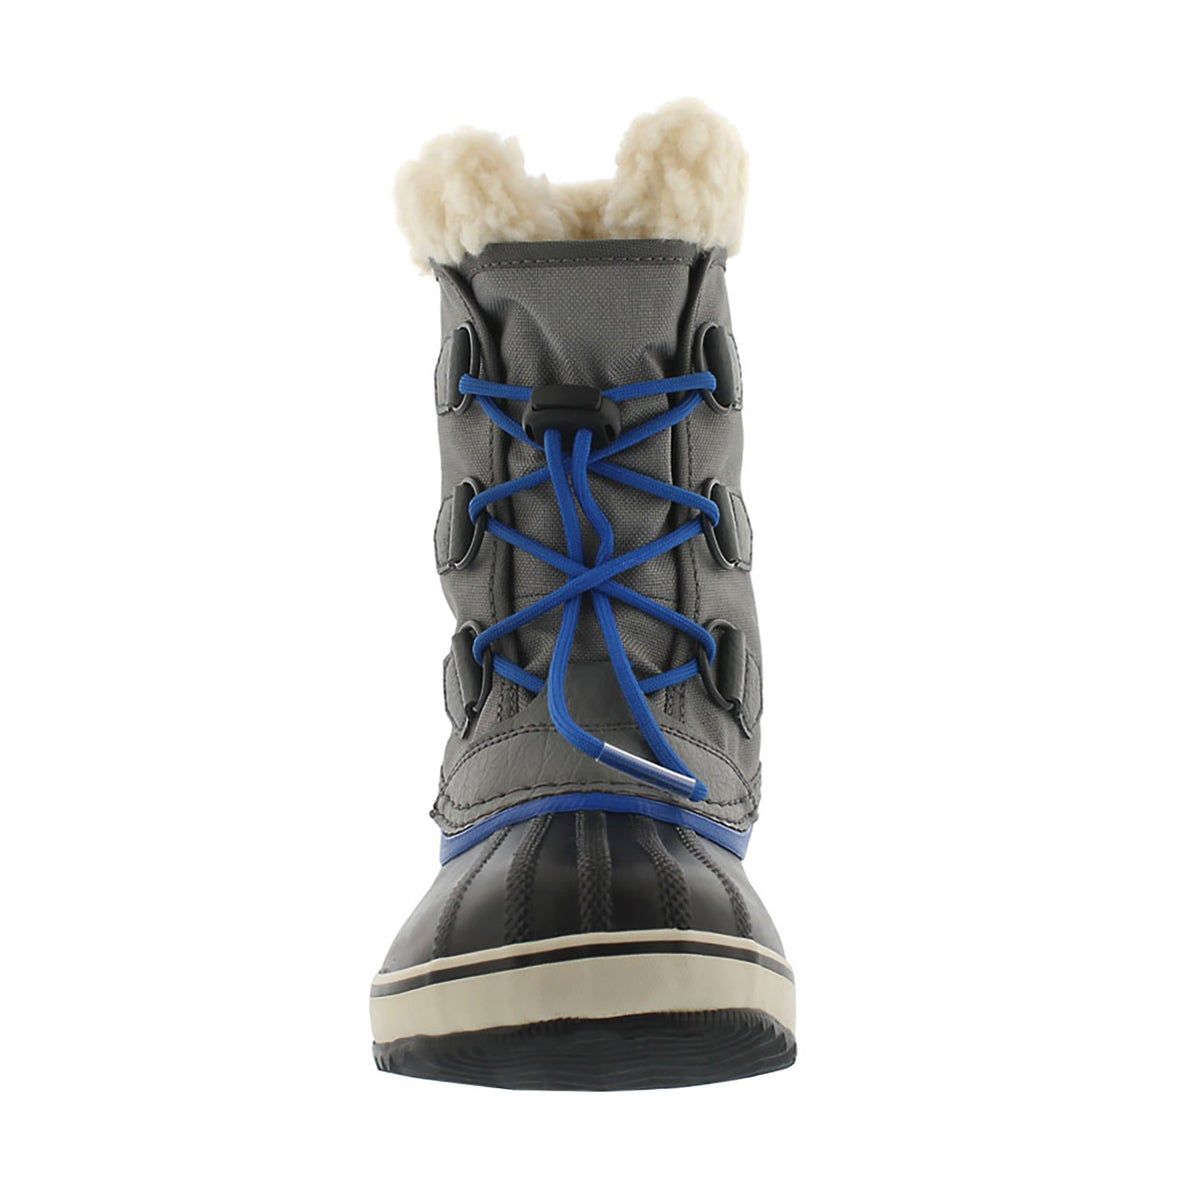 Bys Yoot Pac Nylon grey wtpf winter boot